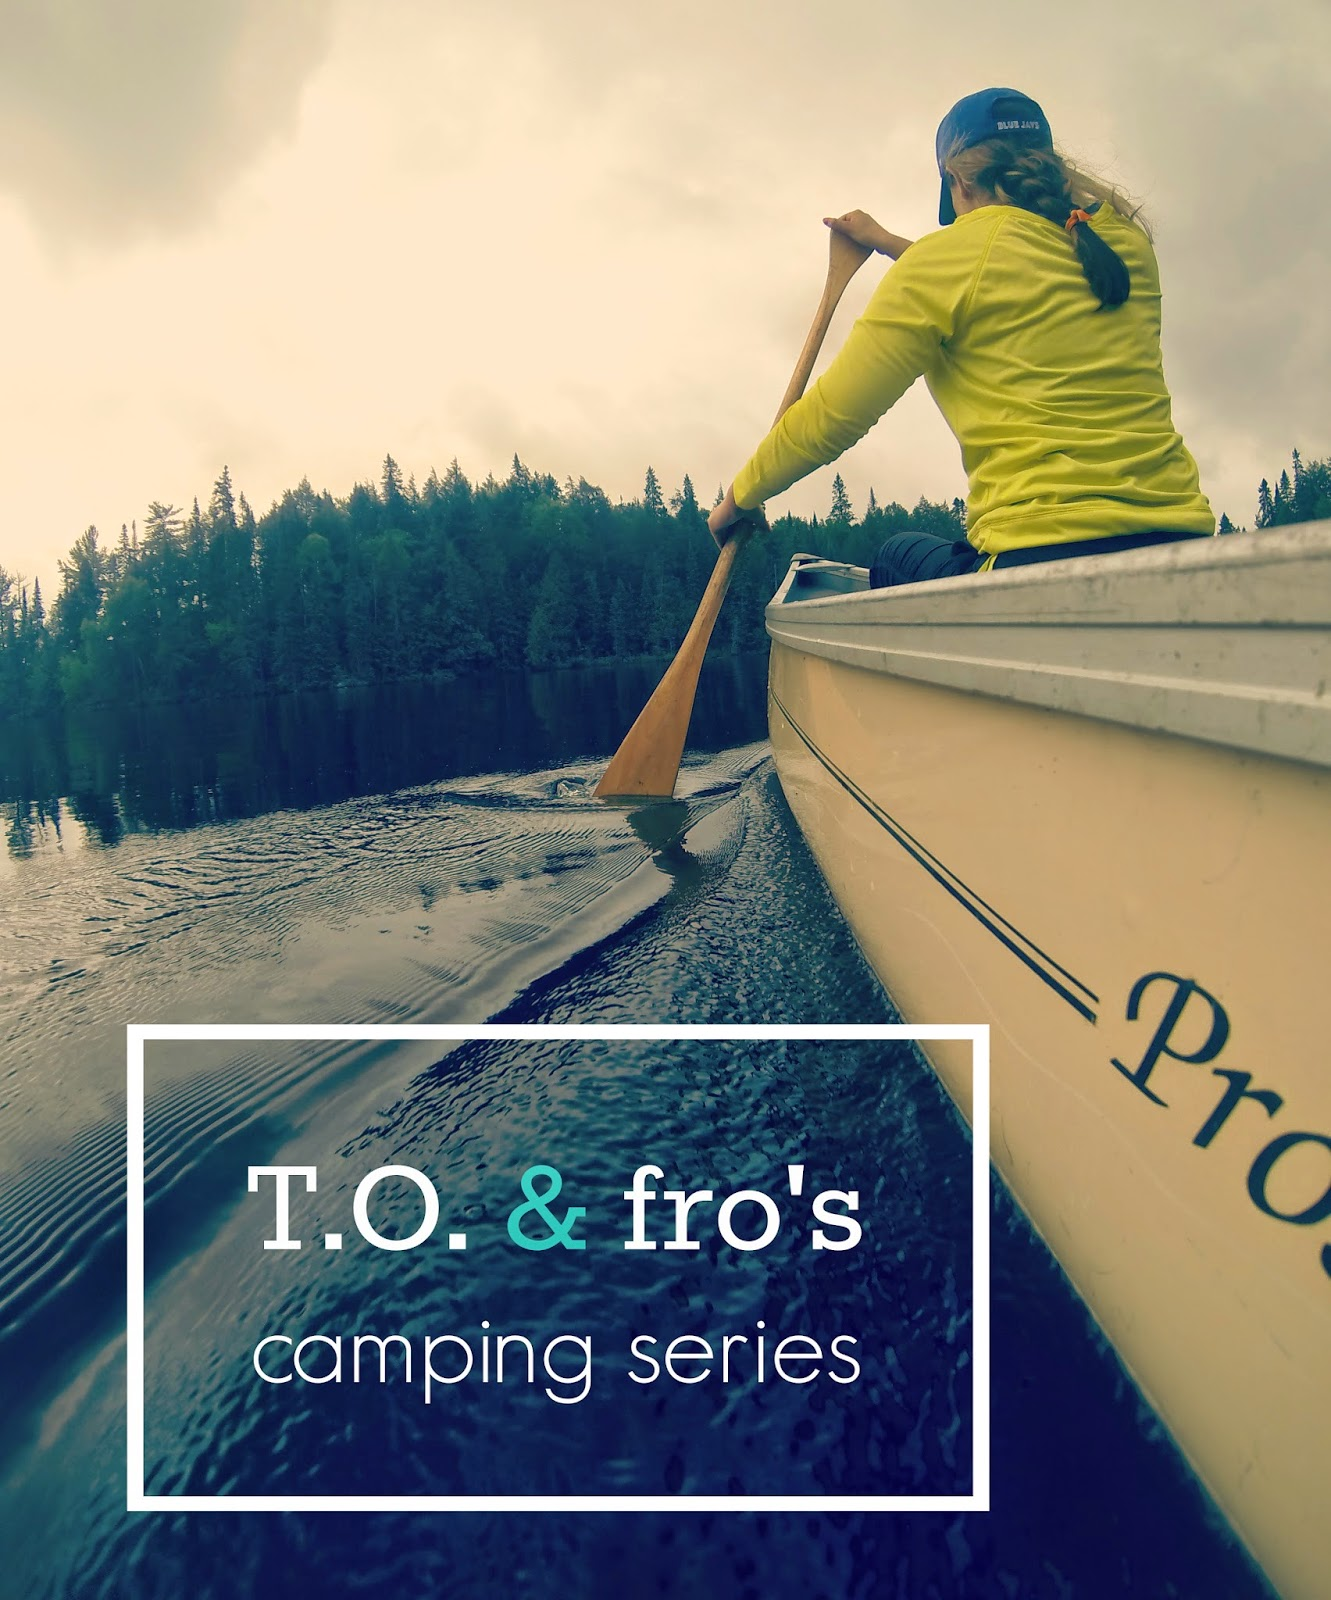 T.O. & fro's camping series